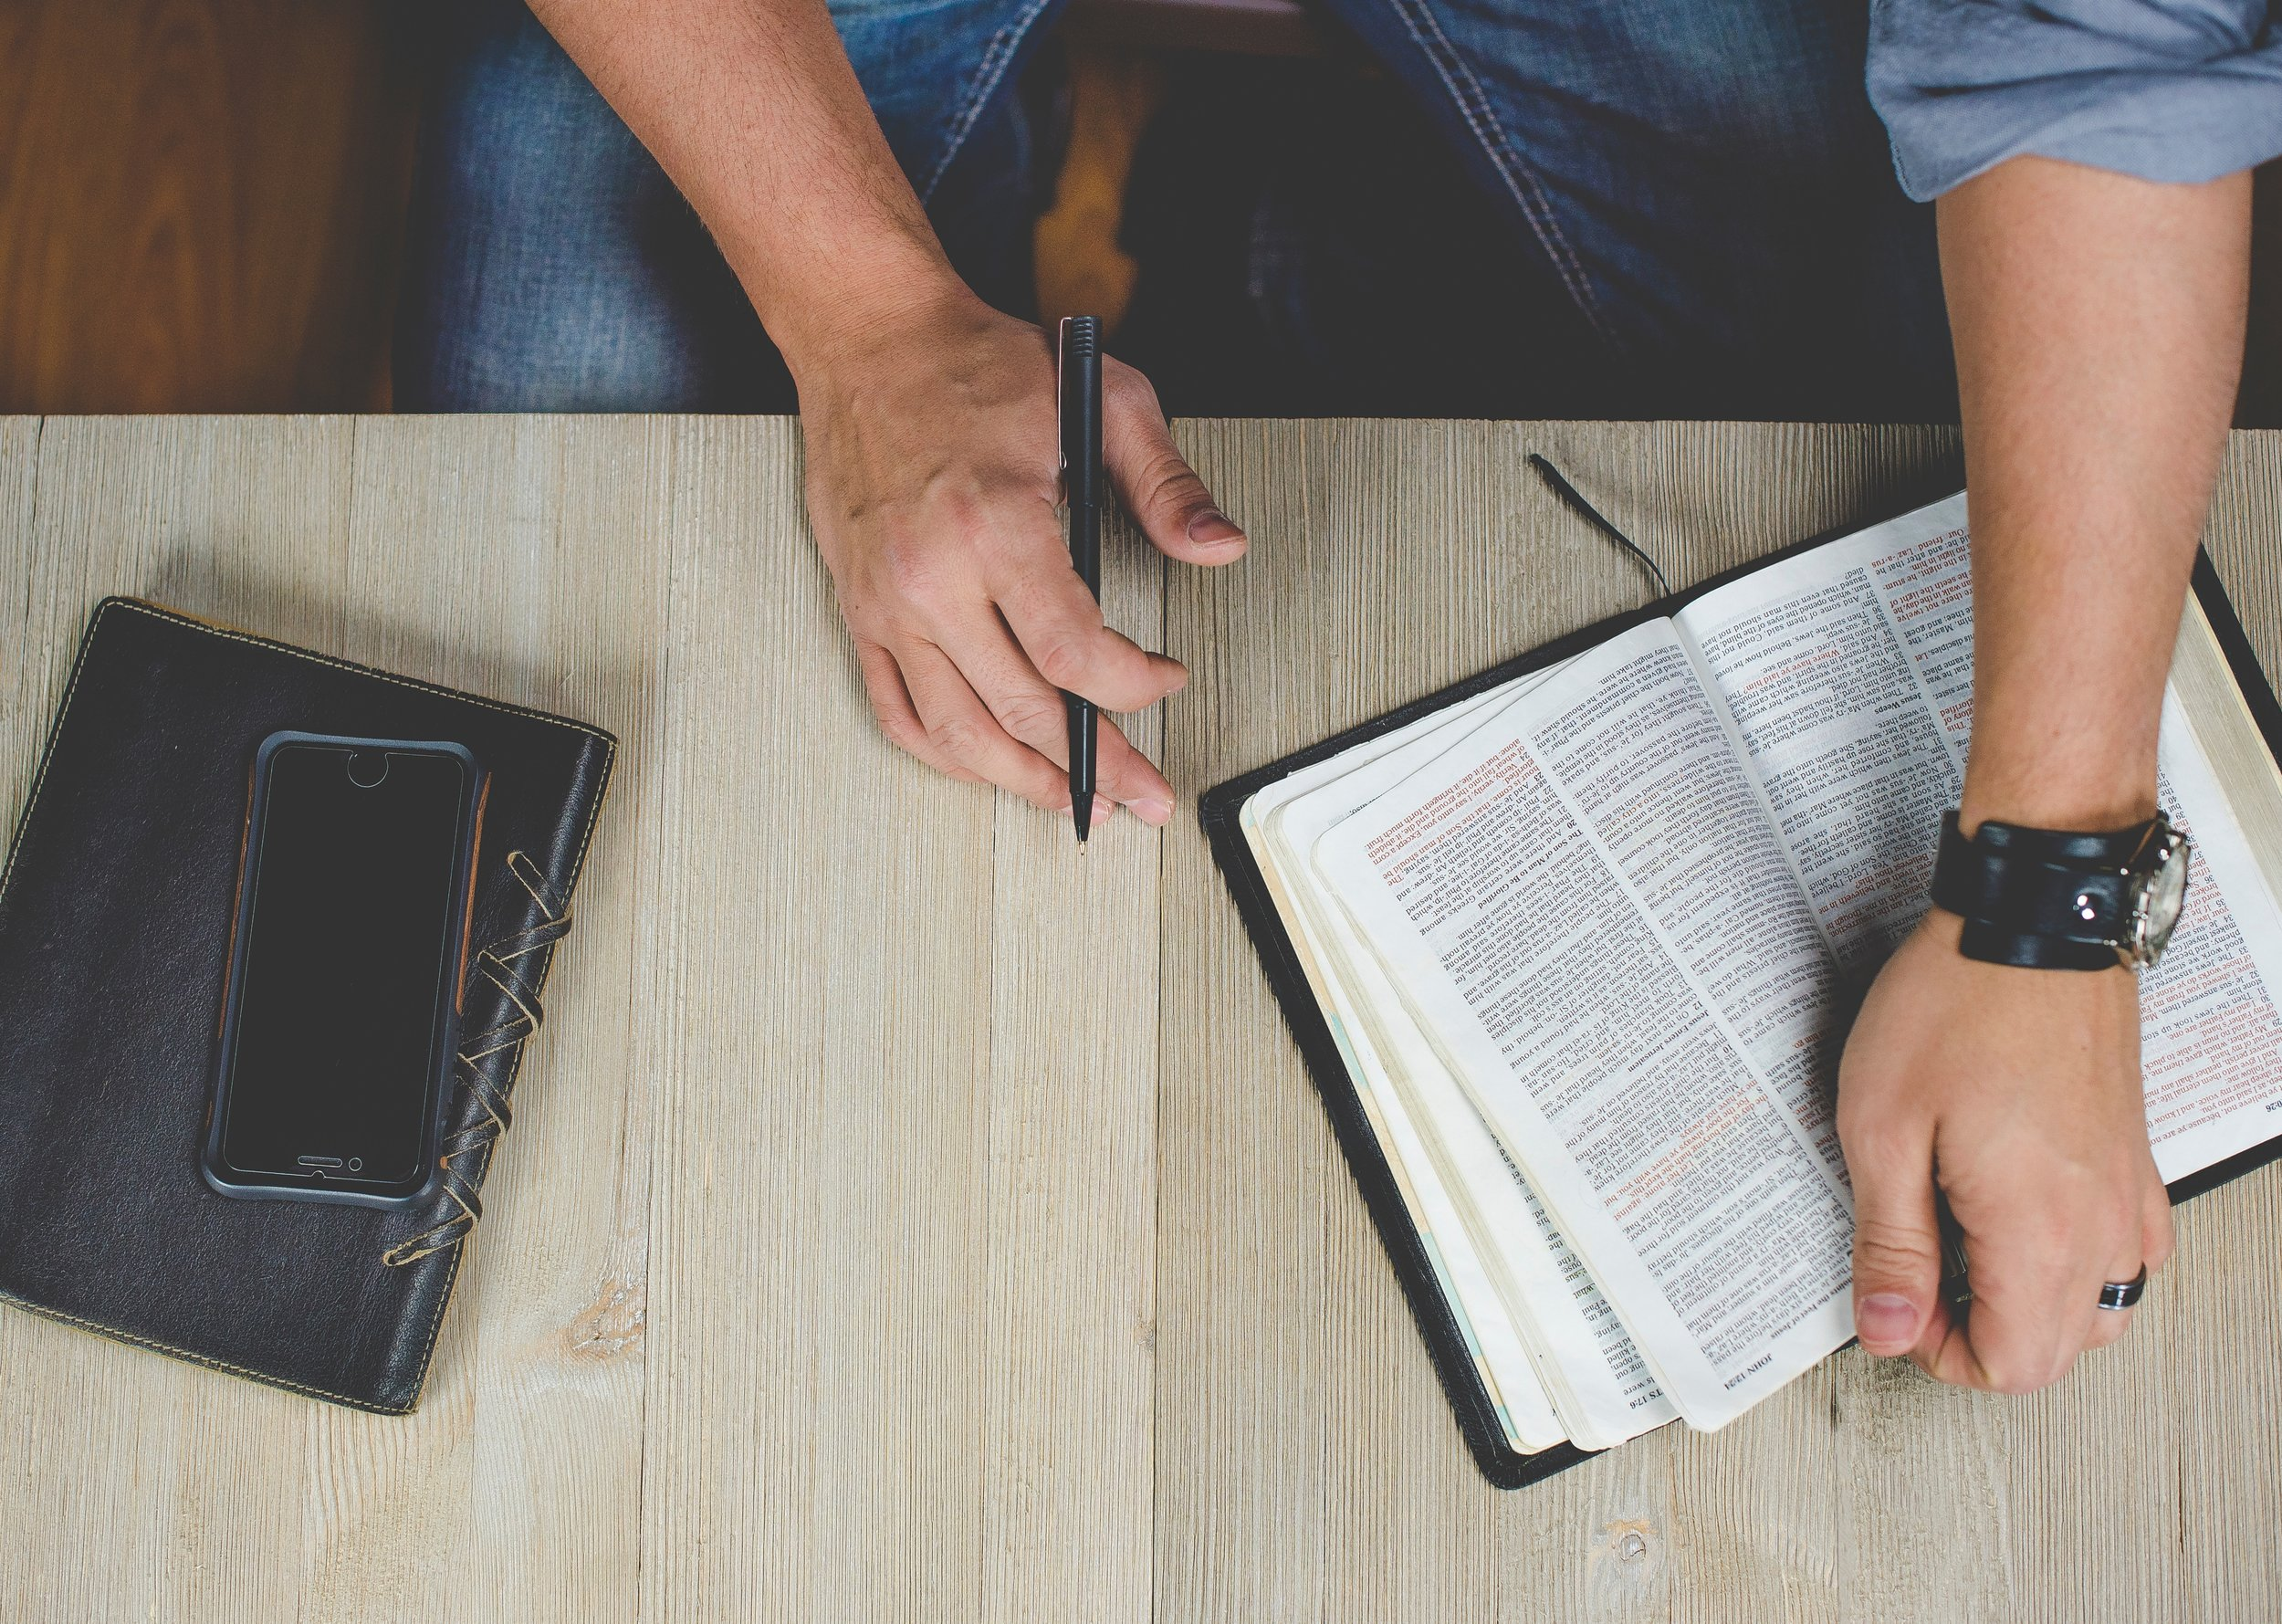 Spiritual Retreats and Conferences - Each year we provide a Spring Retreat and Fall Conference to equip men to be spiritual leaders and to move them along in their spiritual journey.Keep a look out for more information in the weekly newsletter.